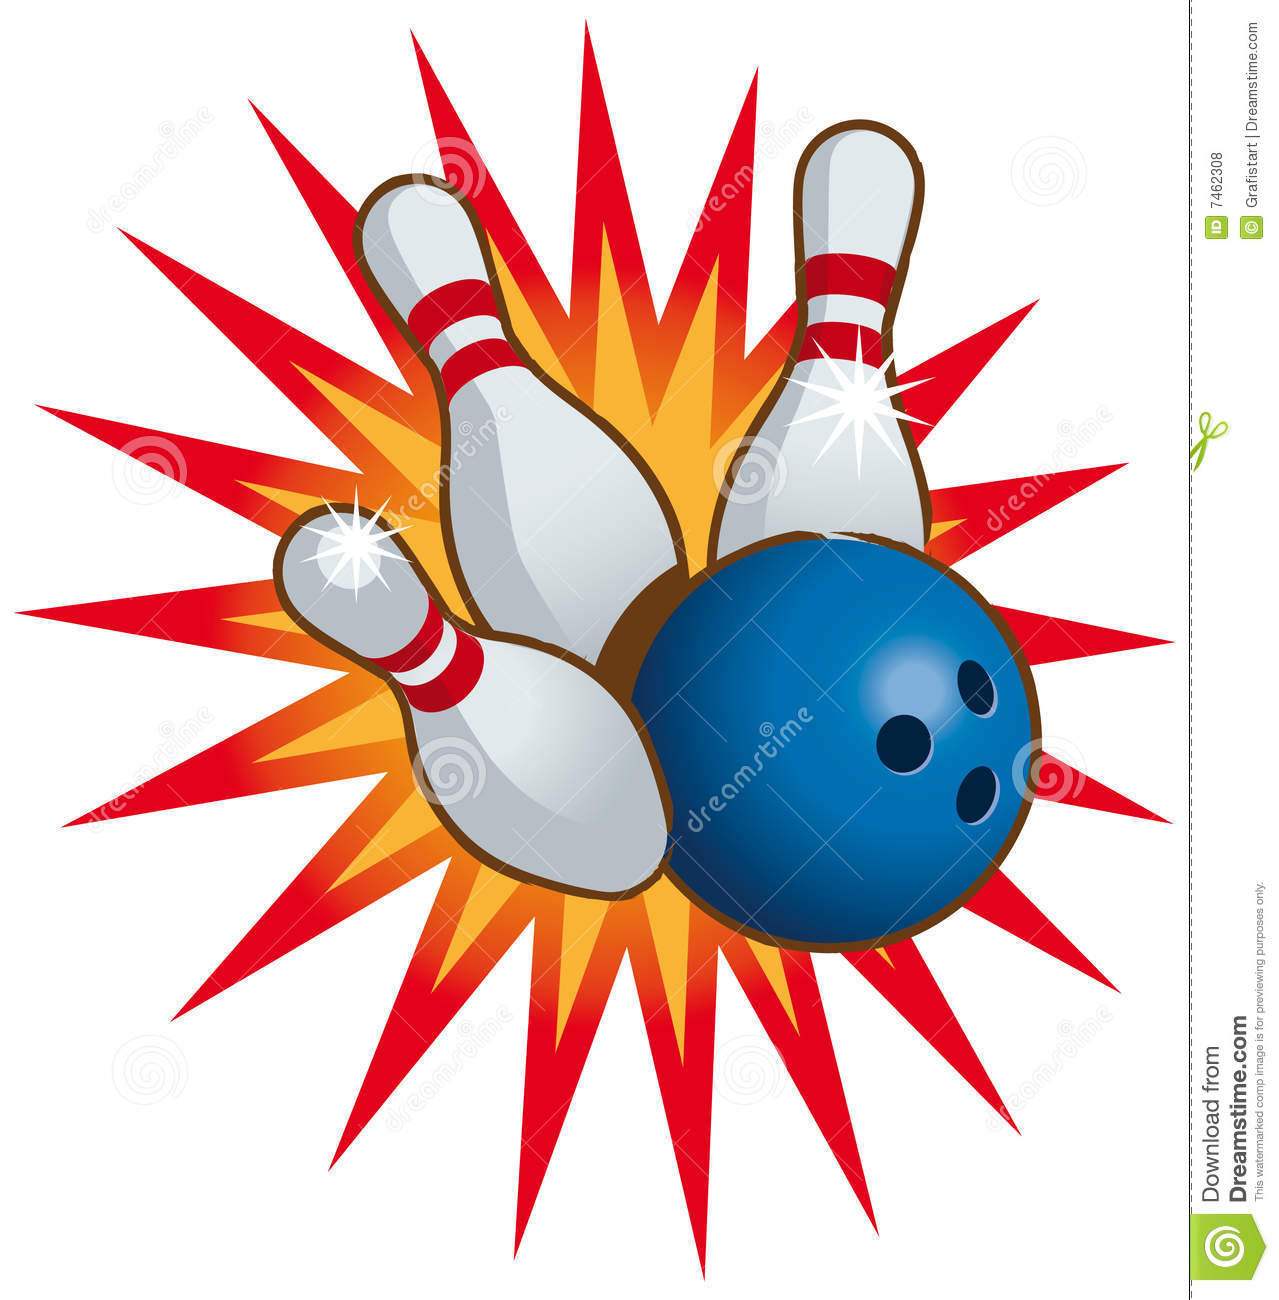 704 Bowling Ball free clipart.